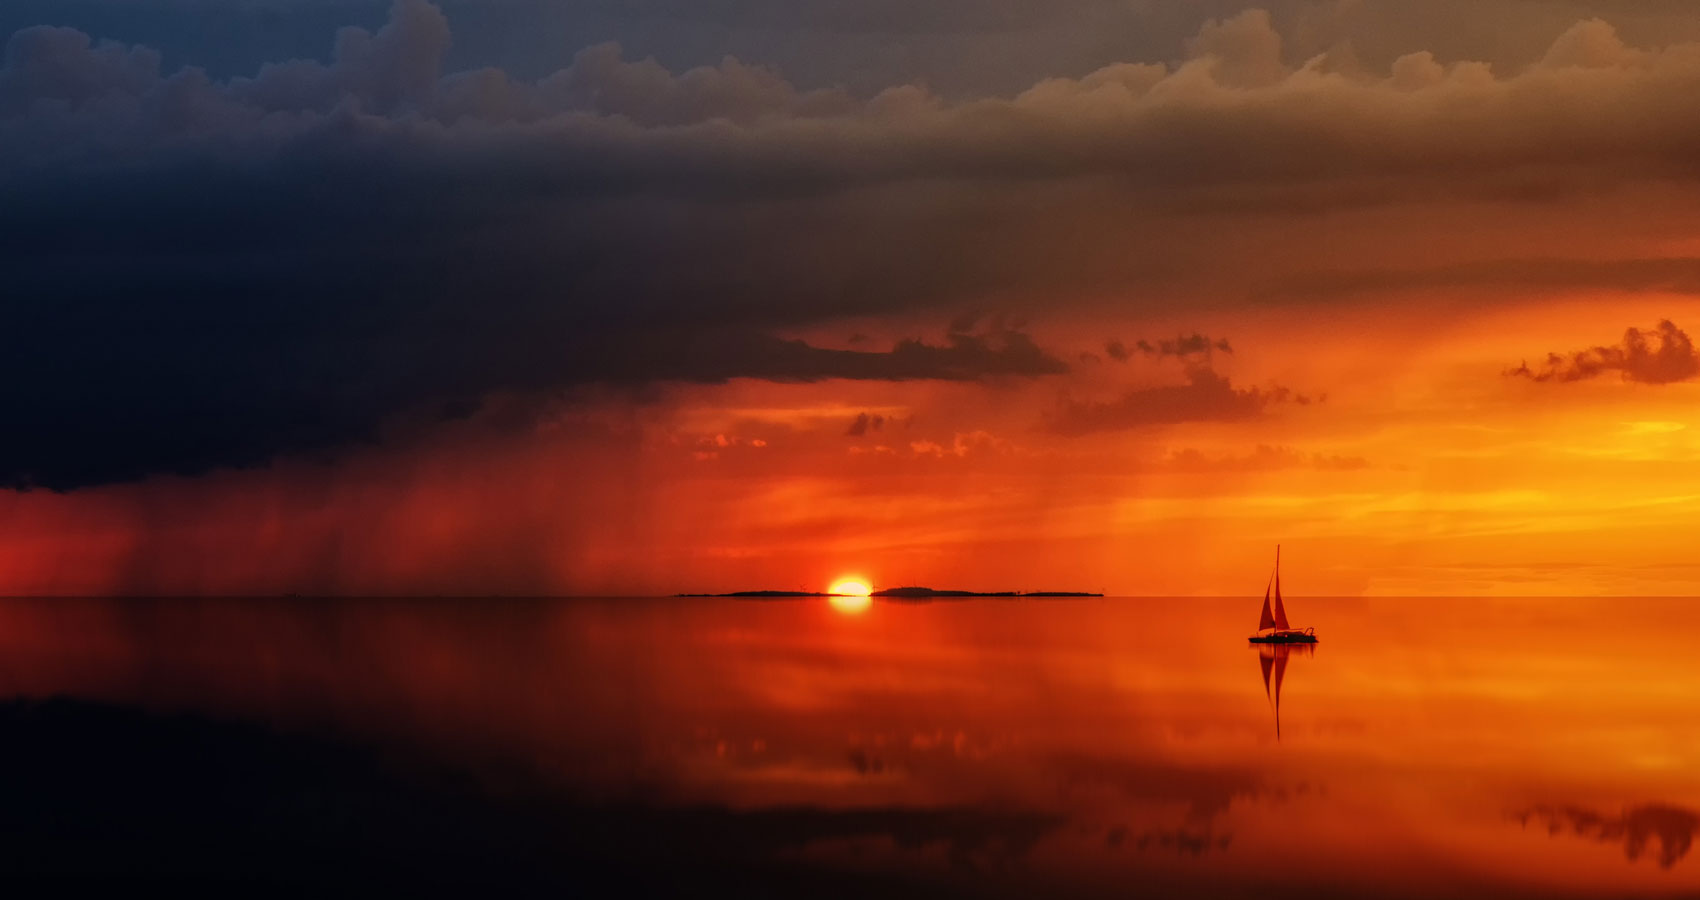 On Sailing, a poem written by Mike Turner at Spillwords.com